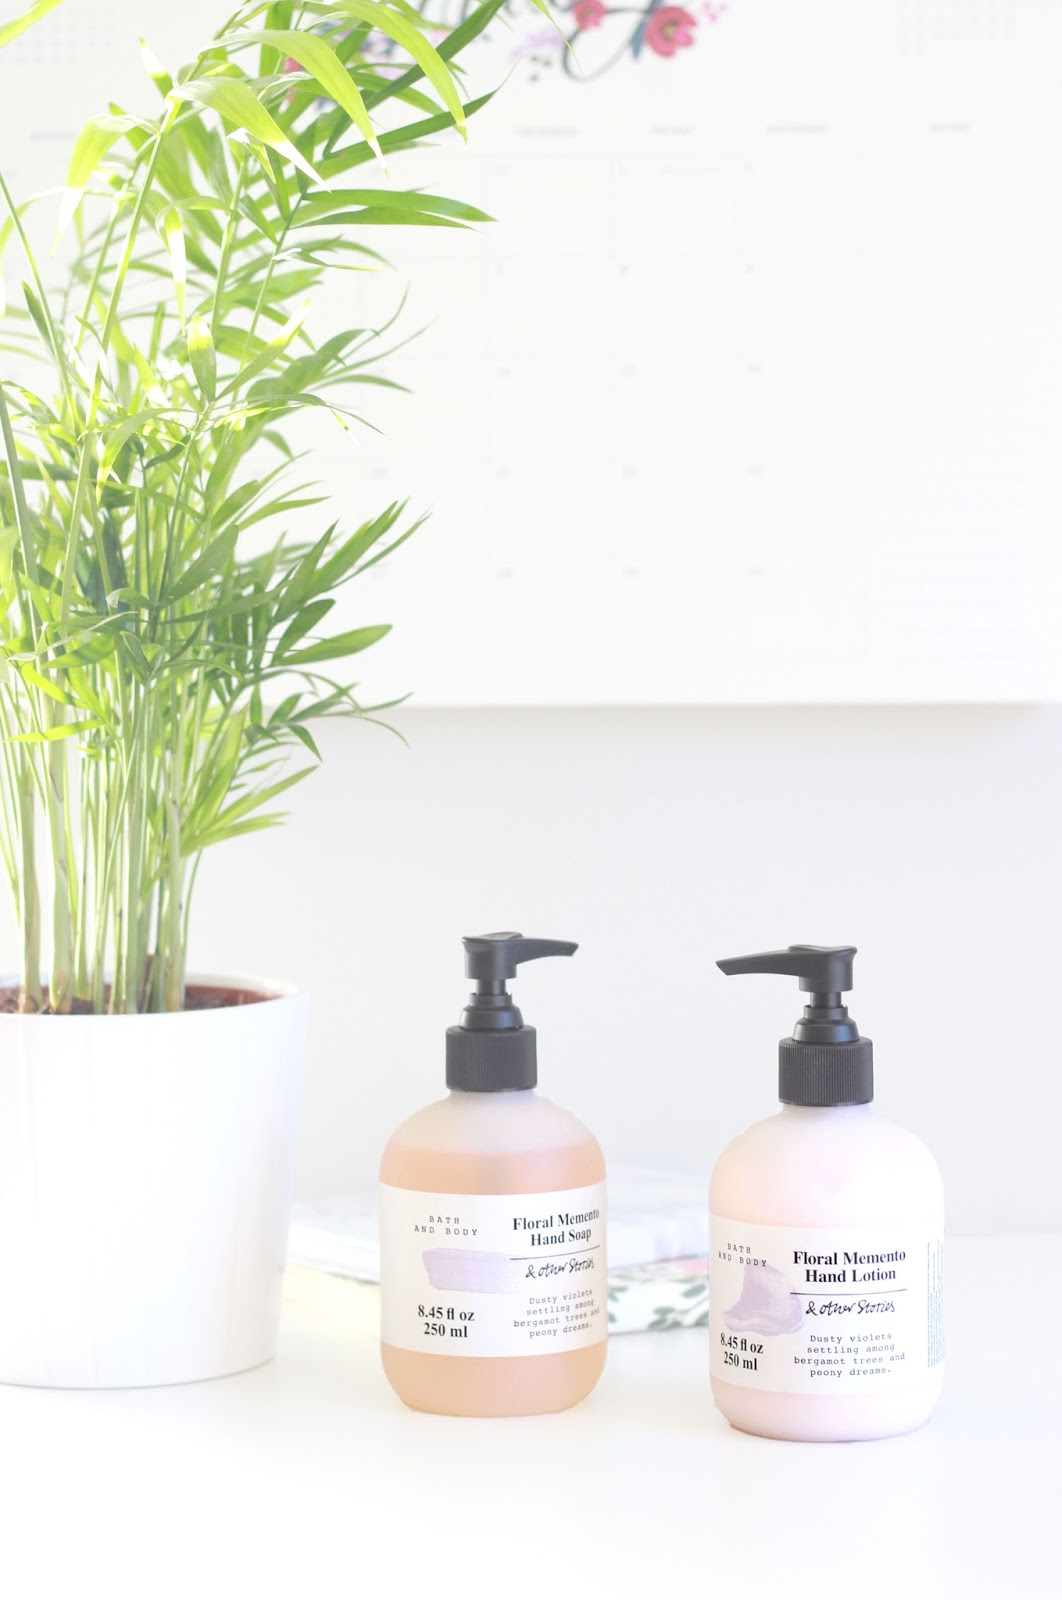 And Other Stories Floral Memento Hand Lotion and Hand Wash